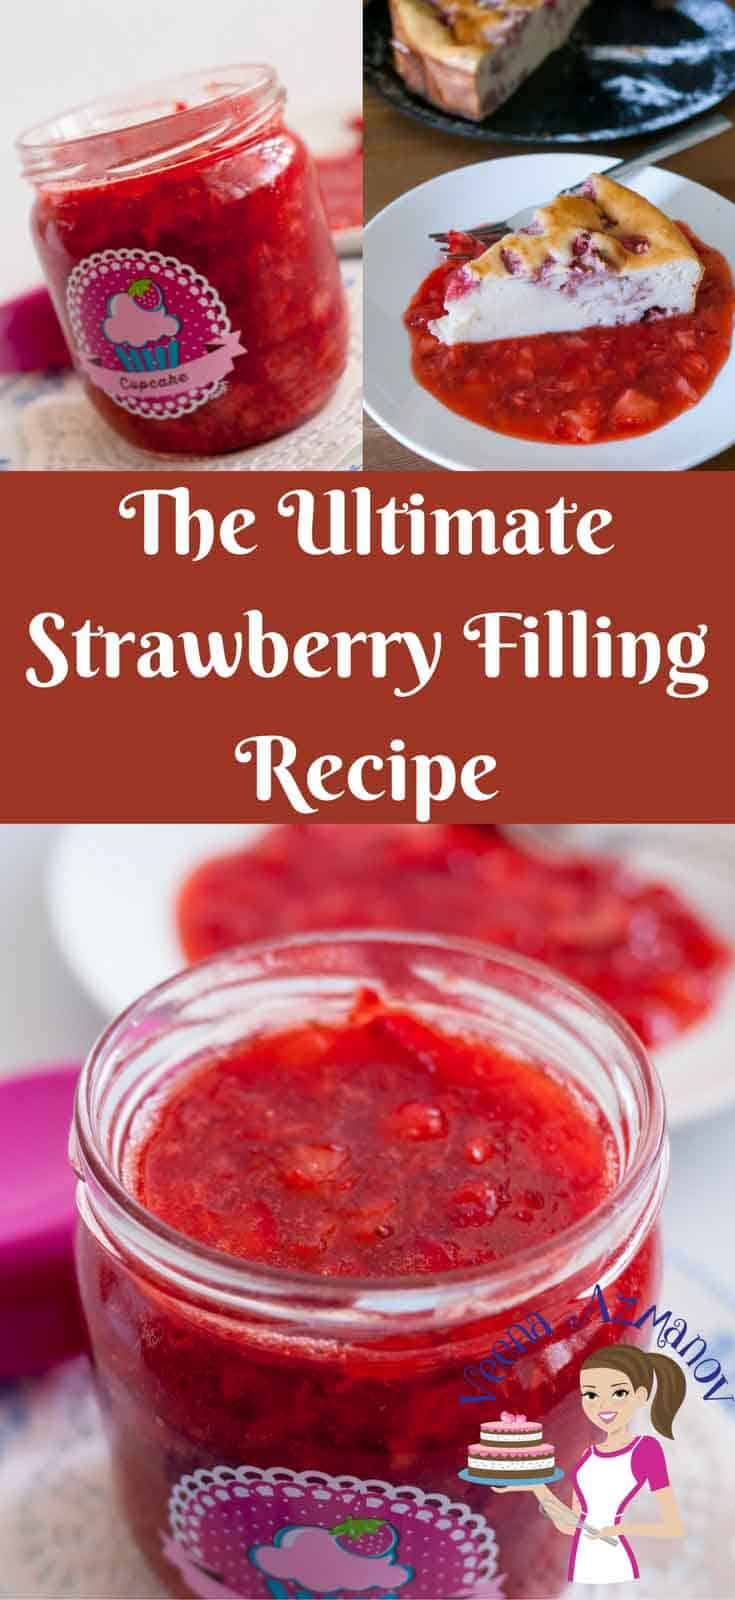 A Pinterest optimized image for the ultimate strawberry filling recipe, featuring a jar of freshly made strawberry filling for cakes, pies and desserts